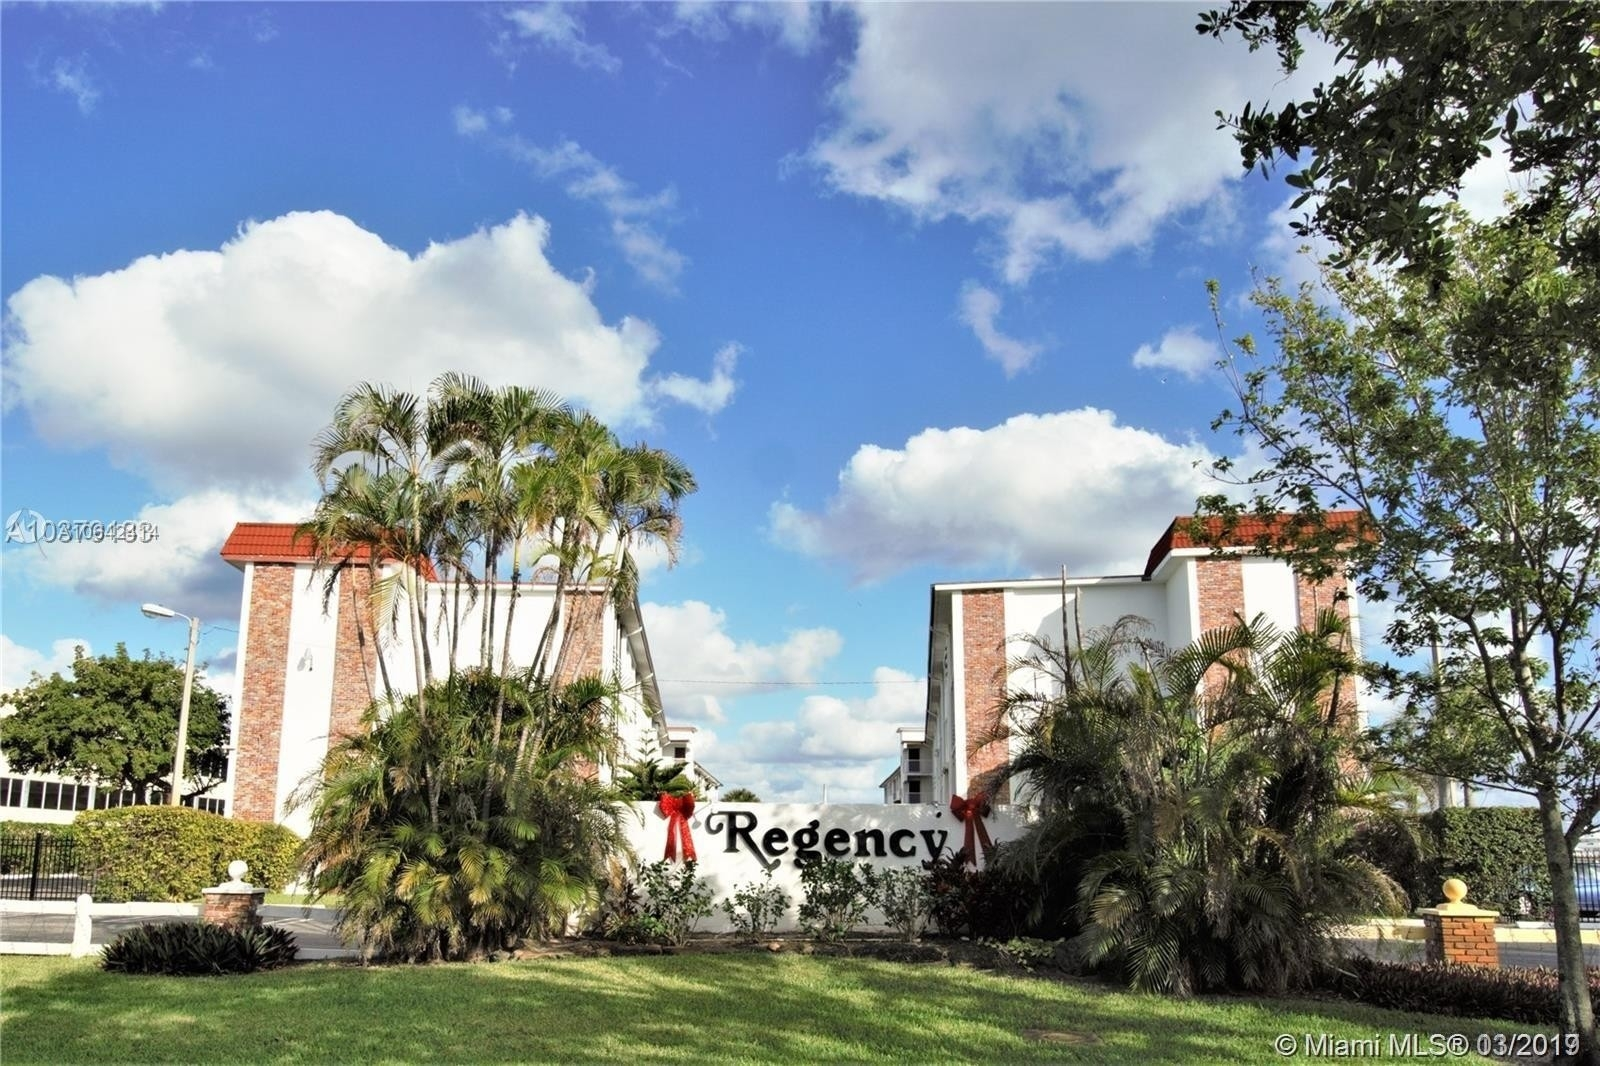 Condominium for Sale at 4500 N Flagler Dr , A8 Northwood Gardens, West Palm Beach, FL 33407